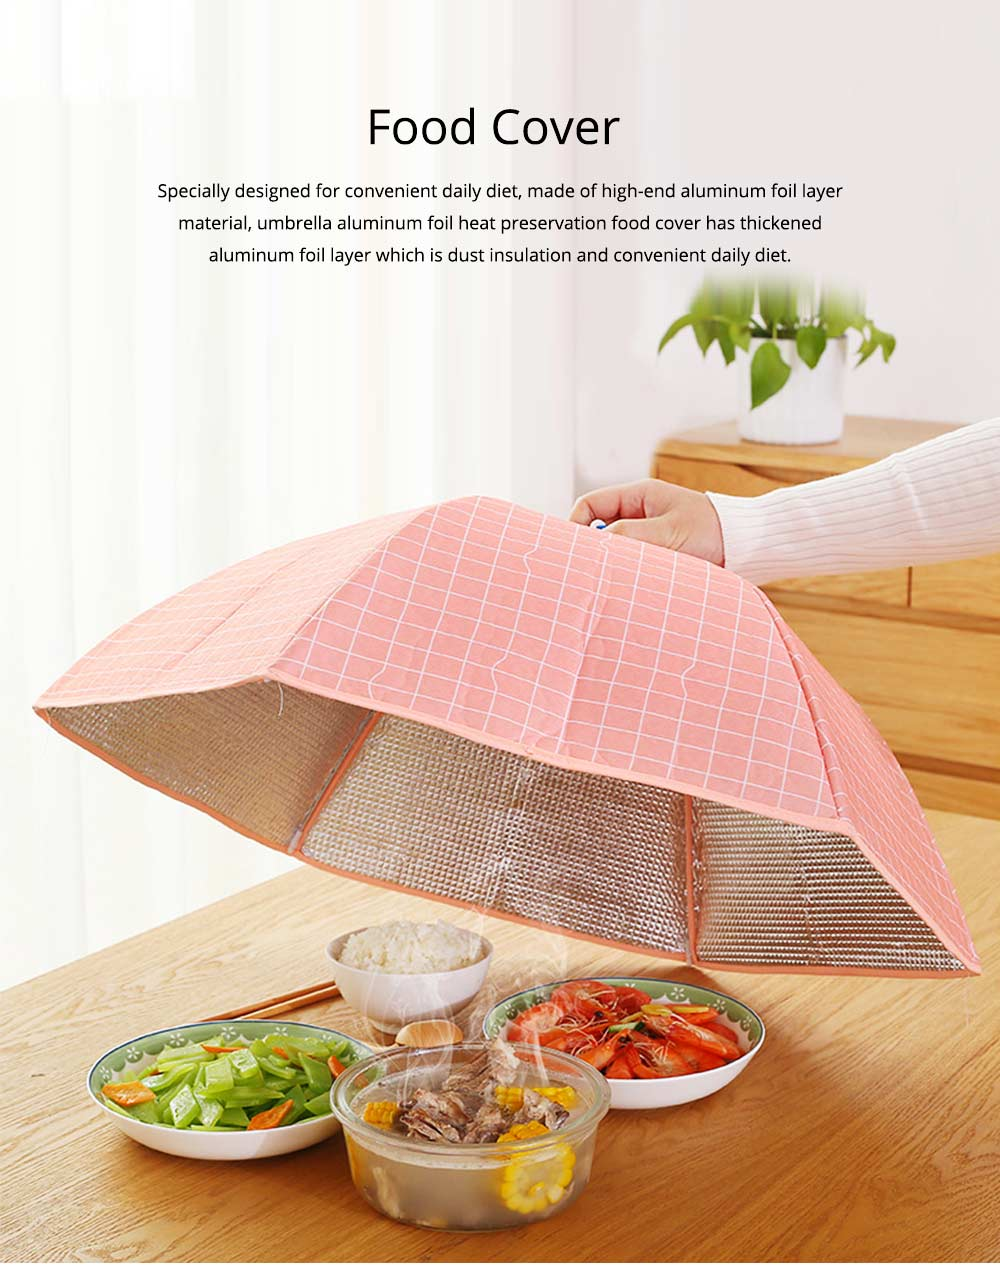 Umbrella Aluminum Foil Heat Preservation Food Cover with Aluminum Foil Layer for Dust Insulation & Convenient Daily Diet 0